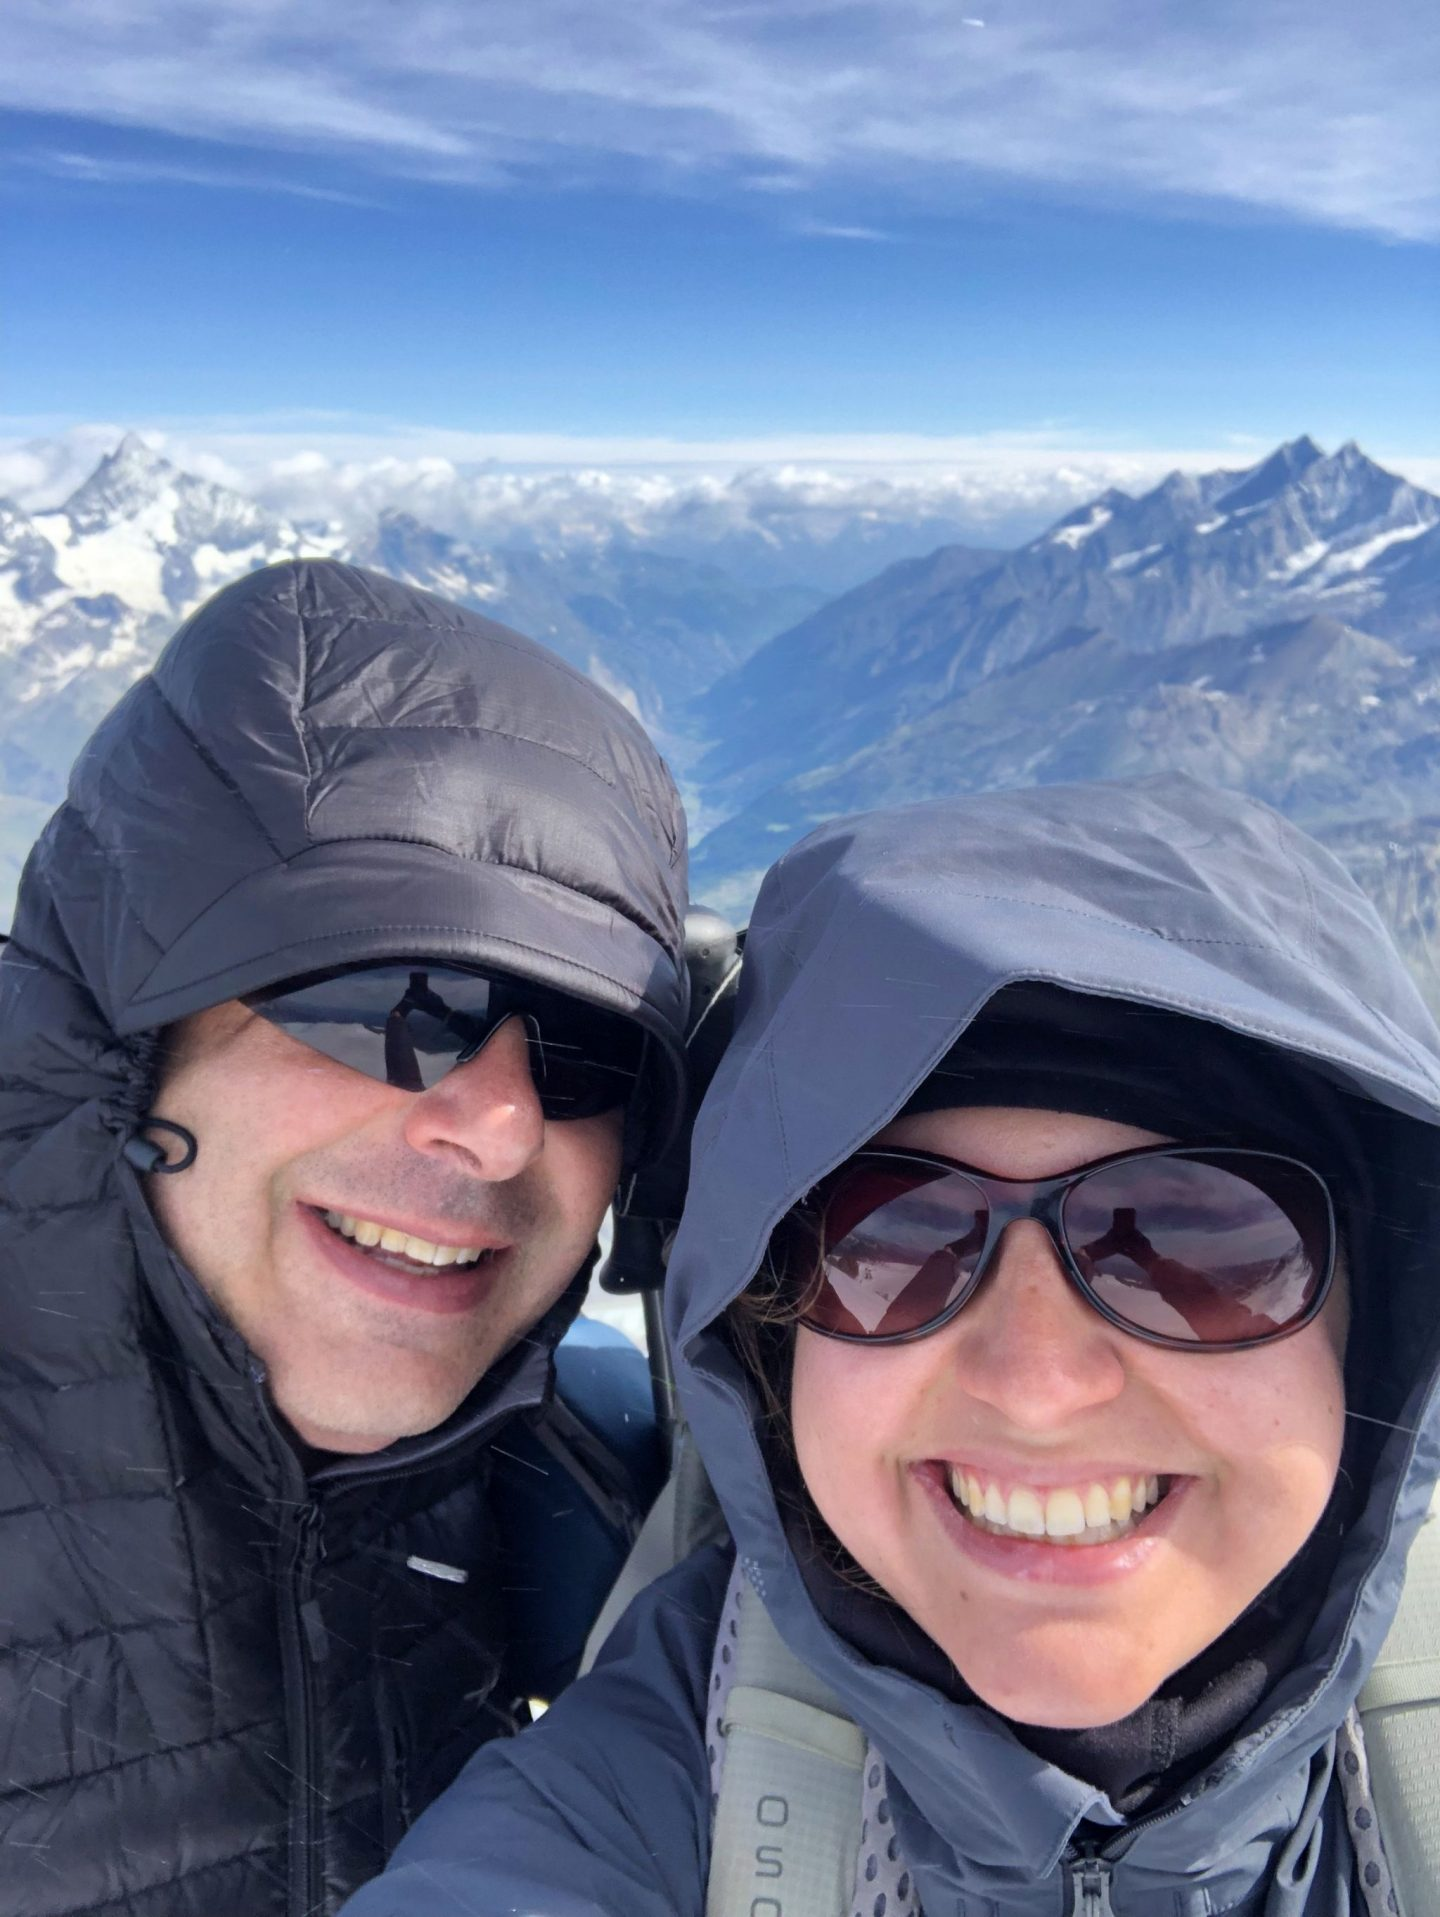 A selfie of Nell and her dad with sunglasses on and a thick coat with the hood up